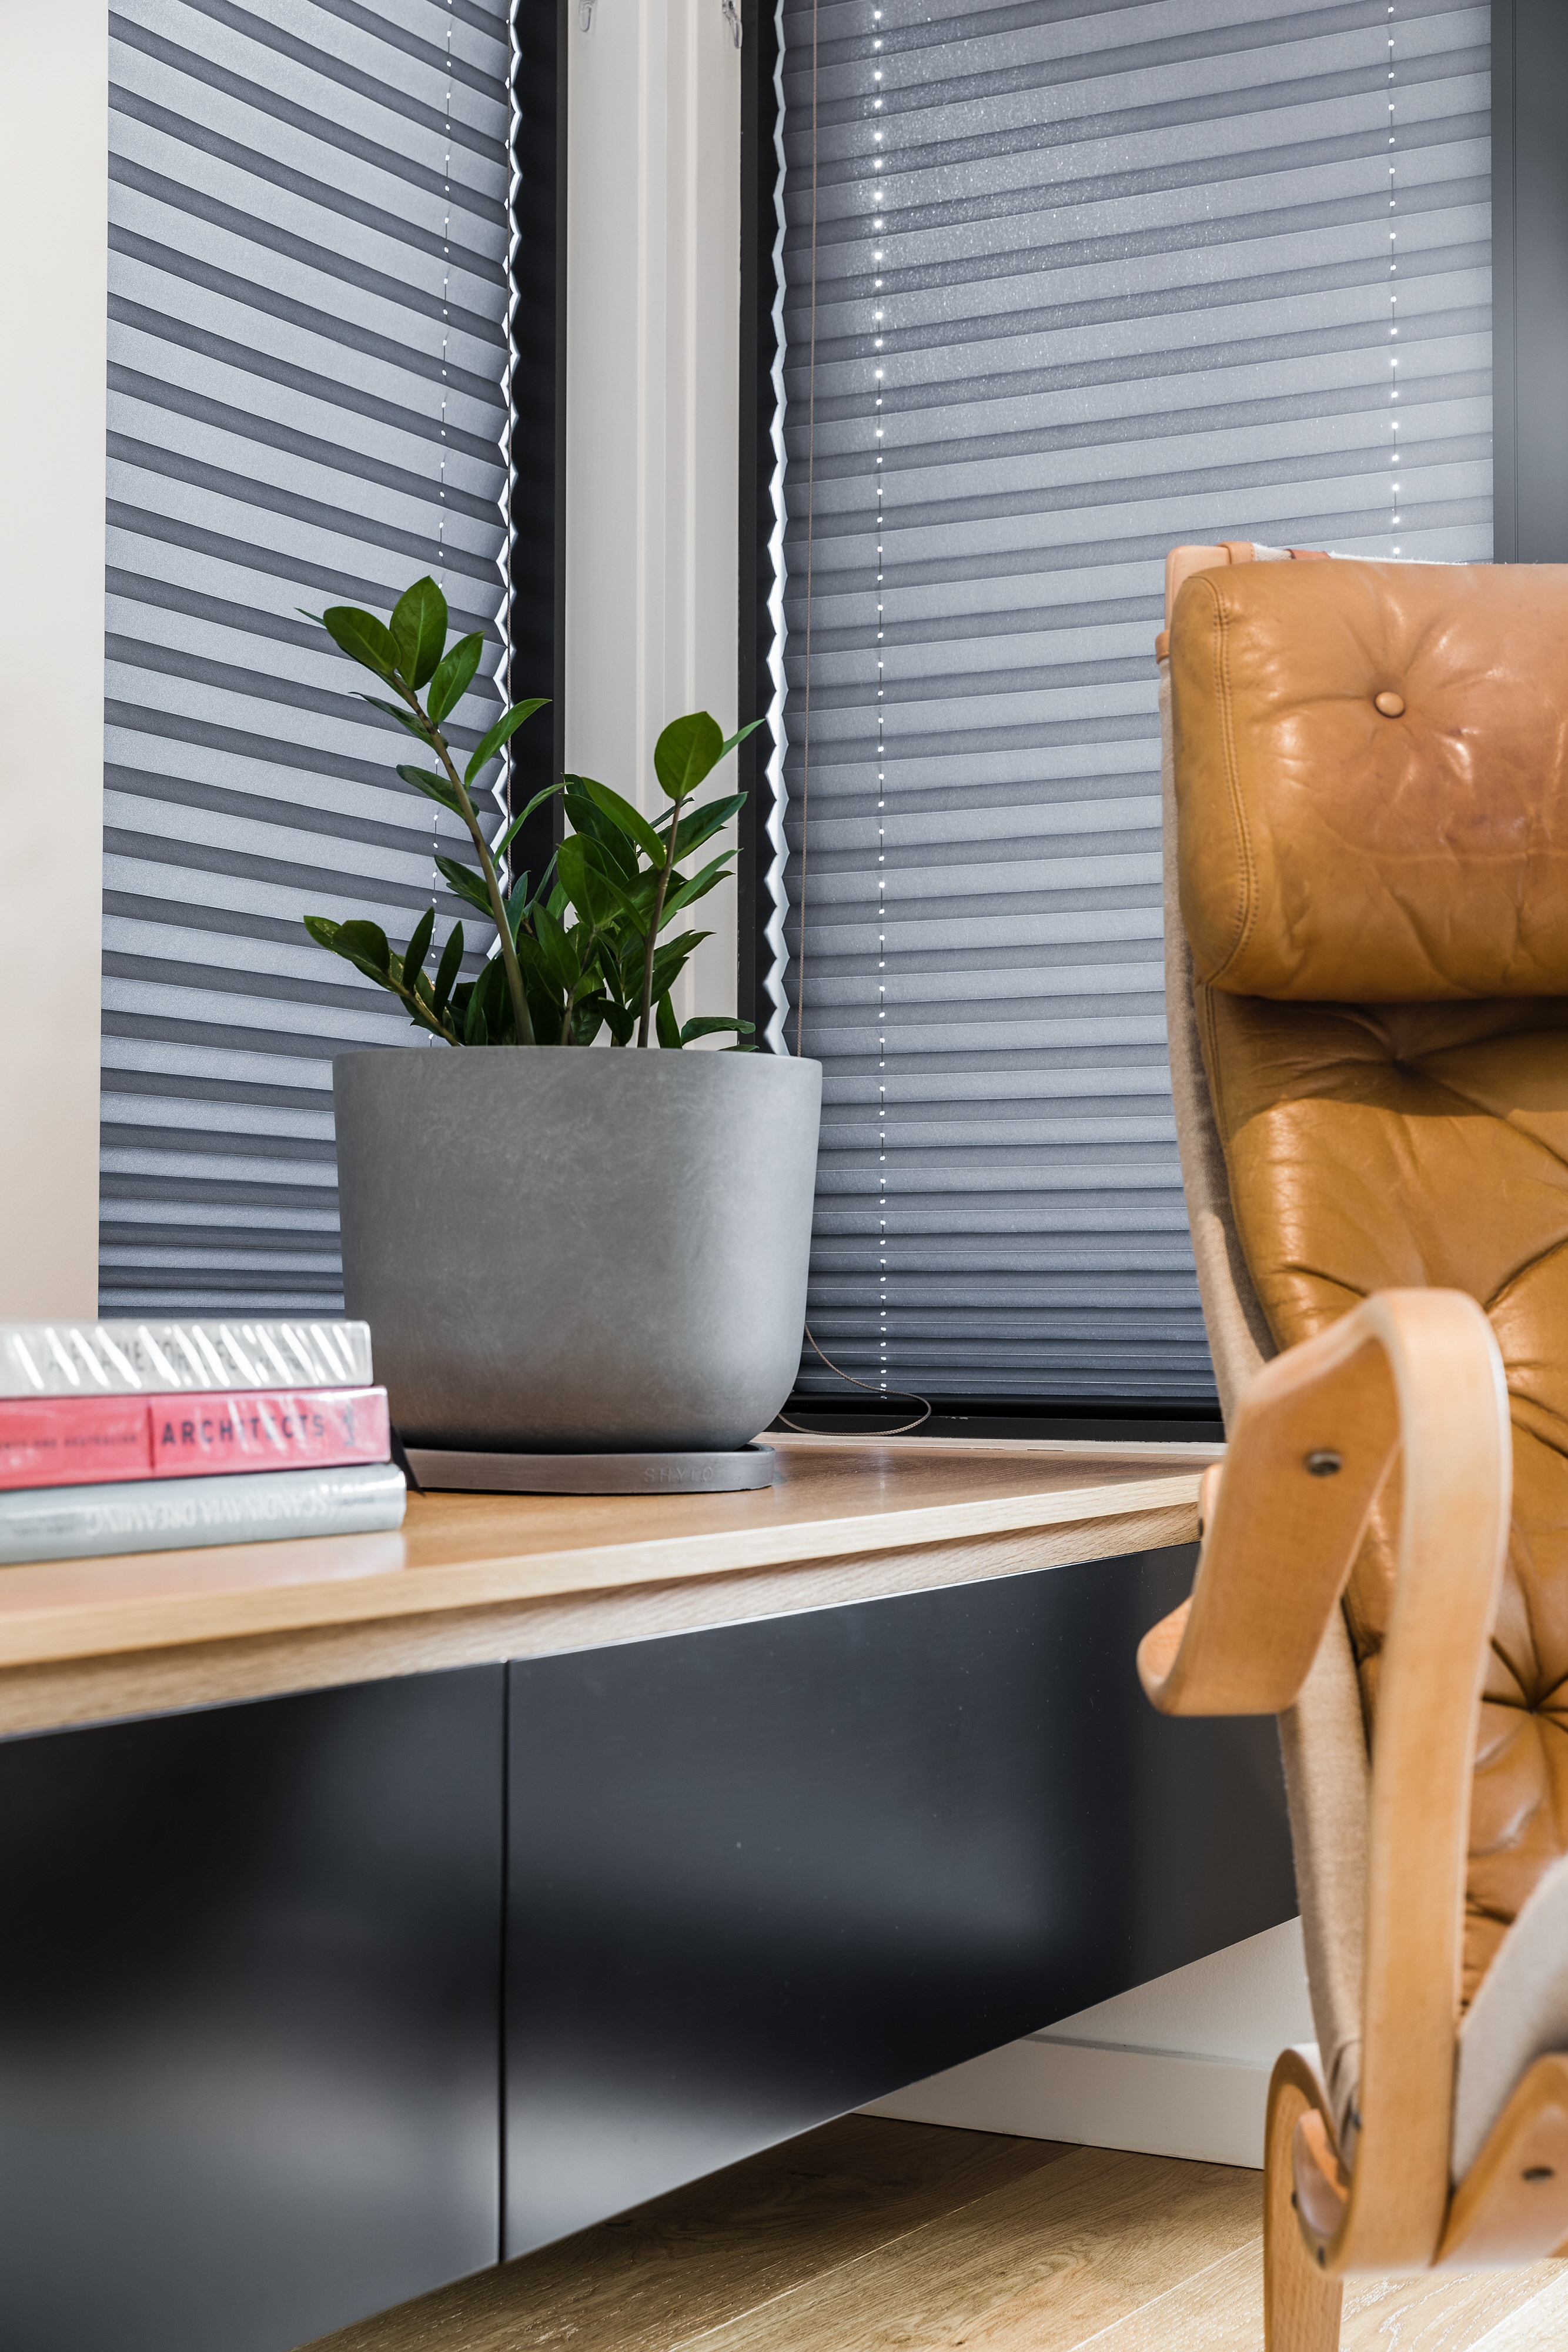 interior design detail photograph featuring grey pot plant and brown leather chair